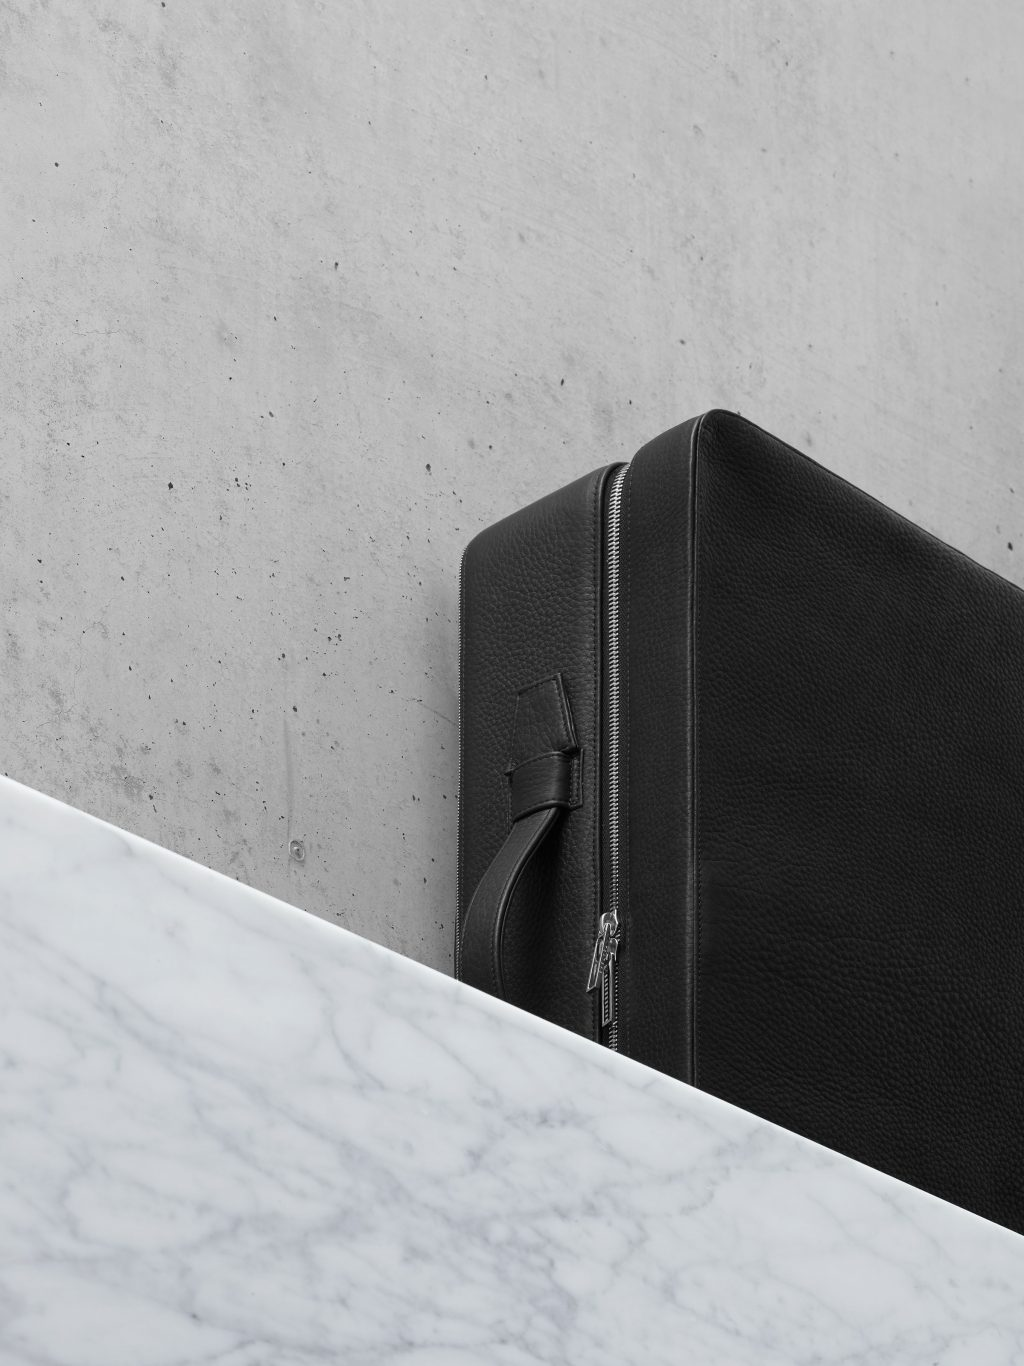 SUIT-CASE — A collaboration between Sir David Chipperfield and TSATSAS